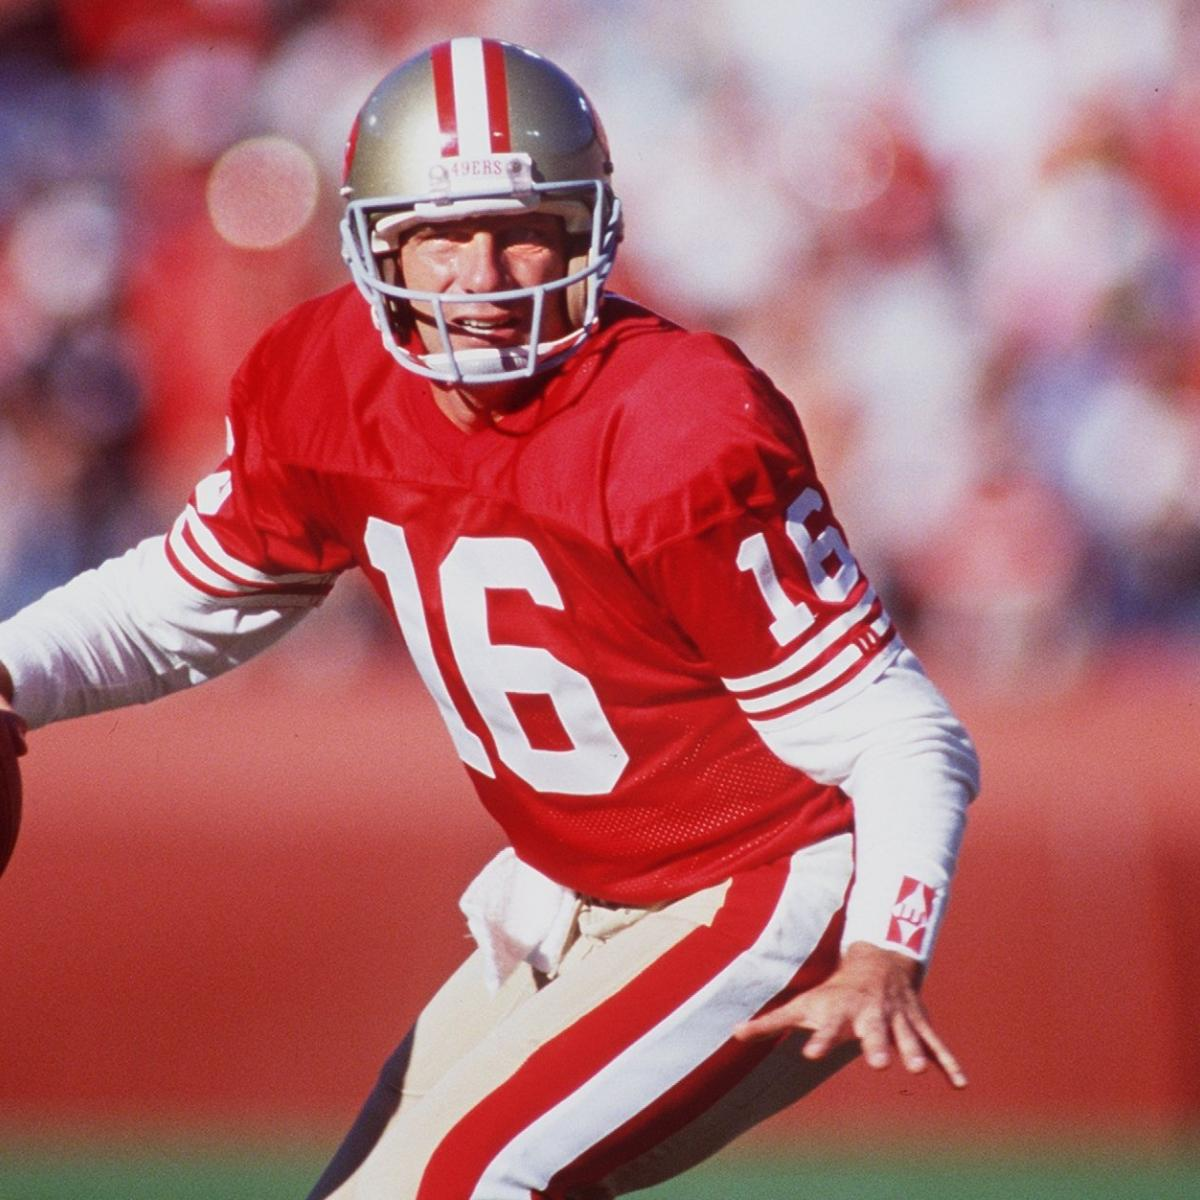 Motivational Quotes For Sports Teams: The Best QB In Each NFL Team's History